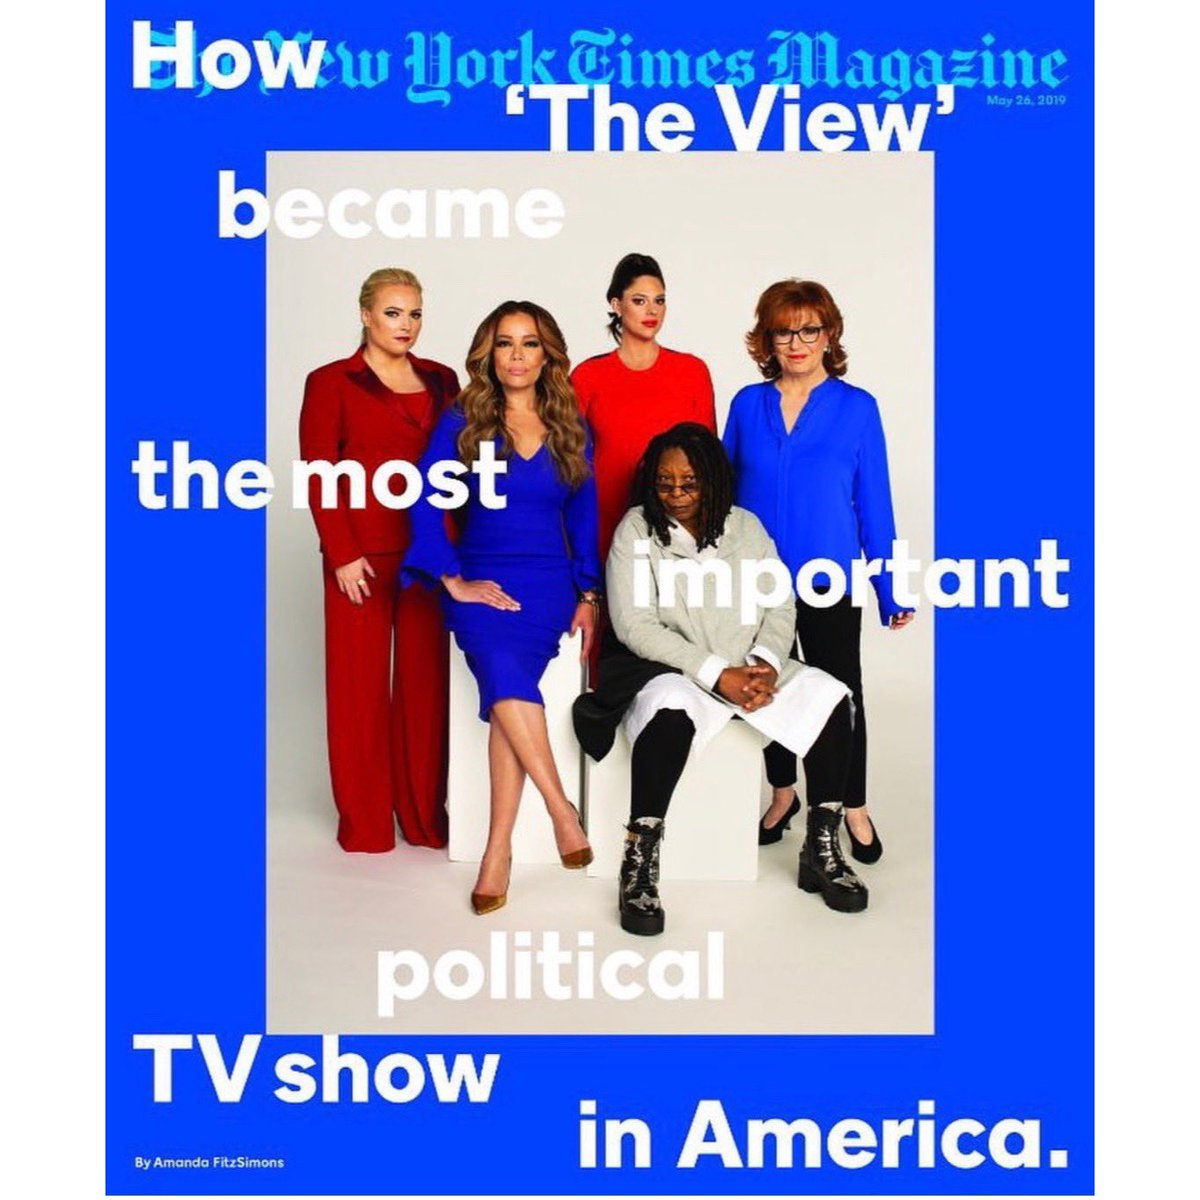 How 'The View' became the most important political TV show in America   Co-hosts of The View on the cover of the New York Times Magazine this week.   Cover story: https://nyti.ms/2VCoboZ